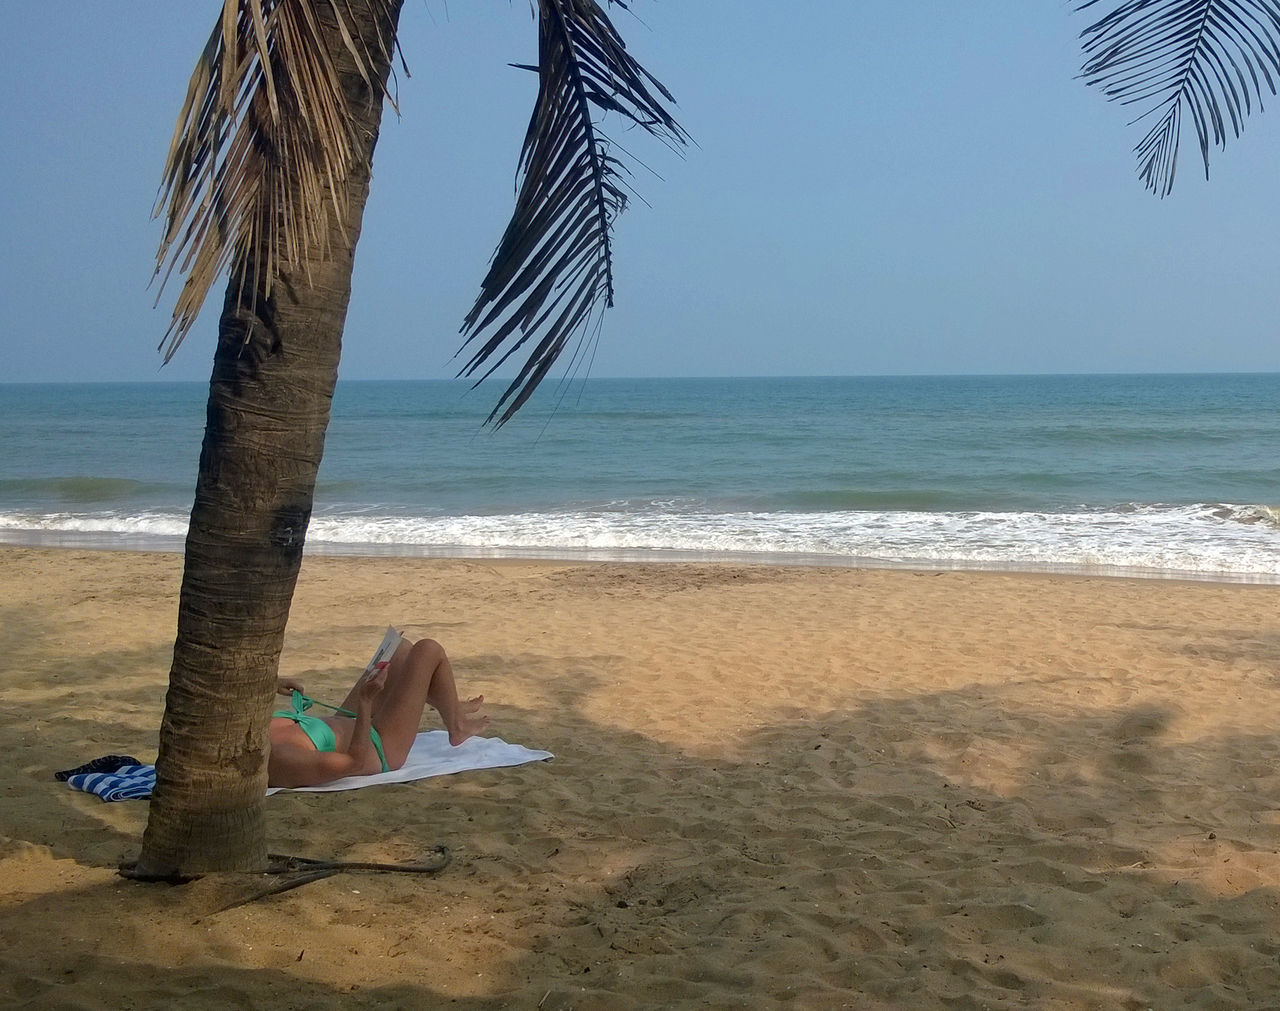 sea, beach, sand, horizon over water, nature, shore, water, vacations, low section, one person, real people, beauty in nature, scenics, outdoors, day, barefoot, sky, relaxation, clear sky, tree, wave, people